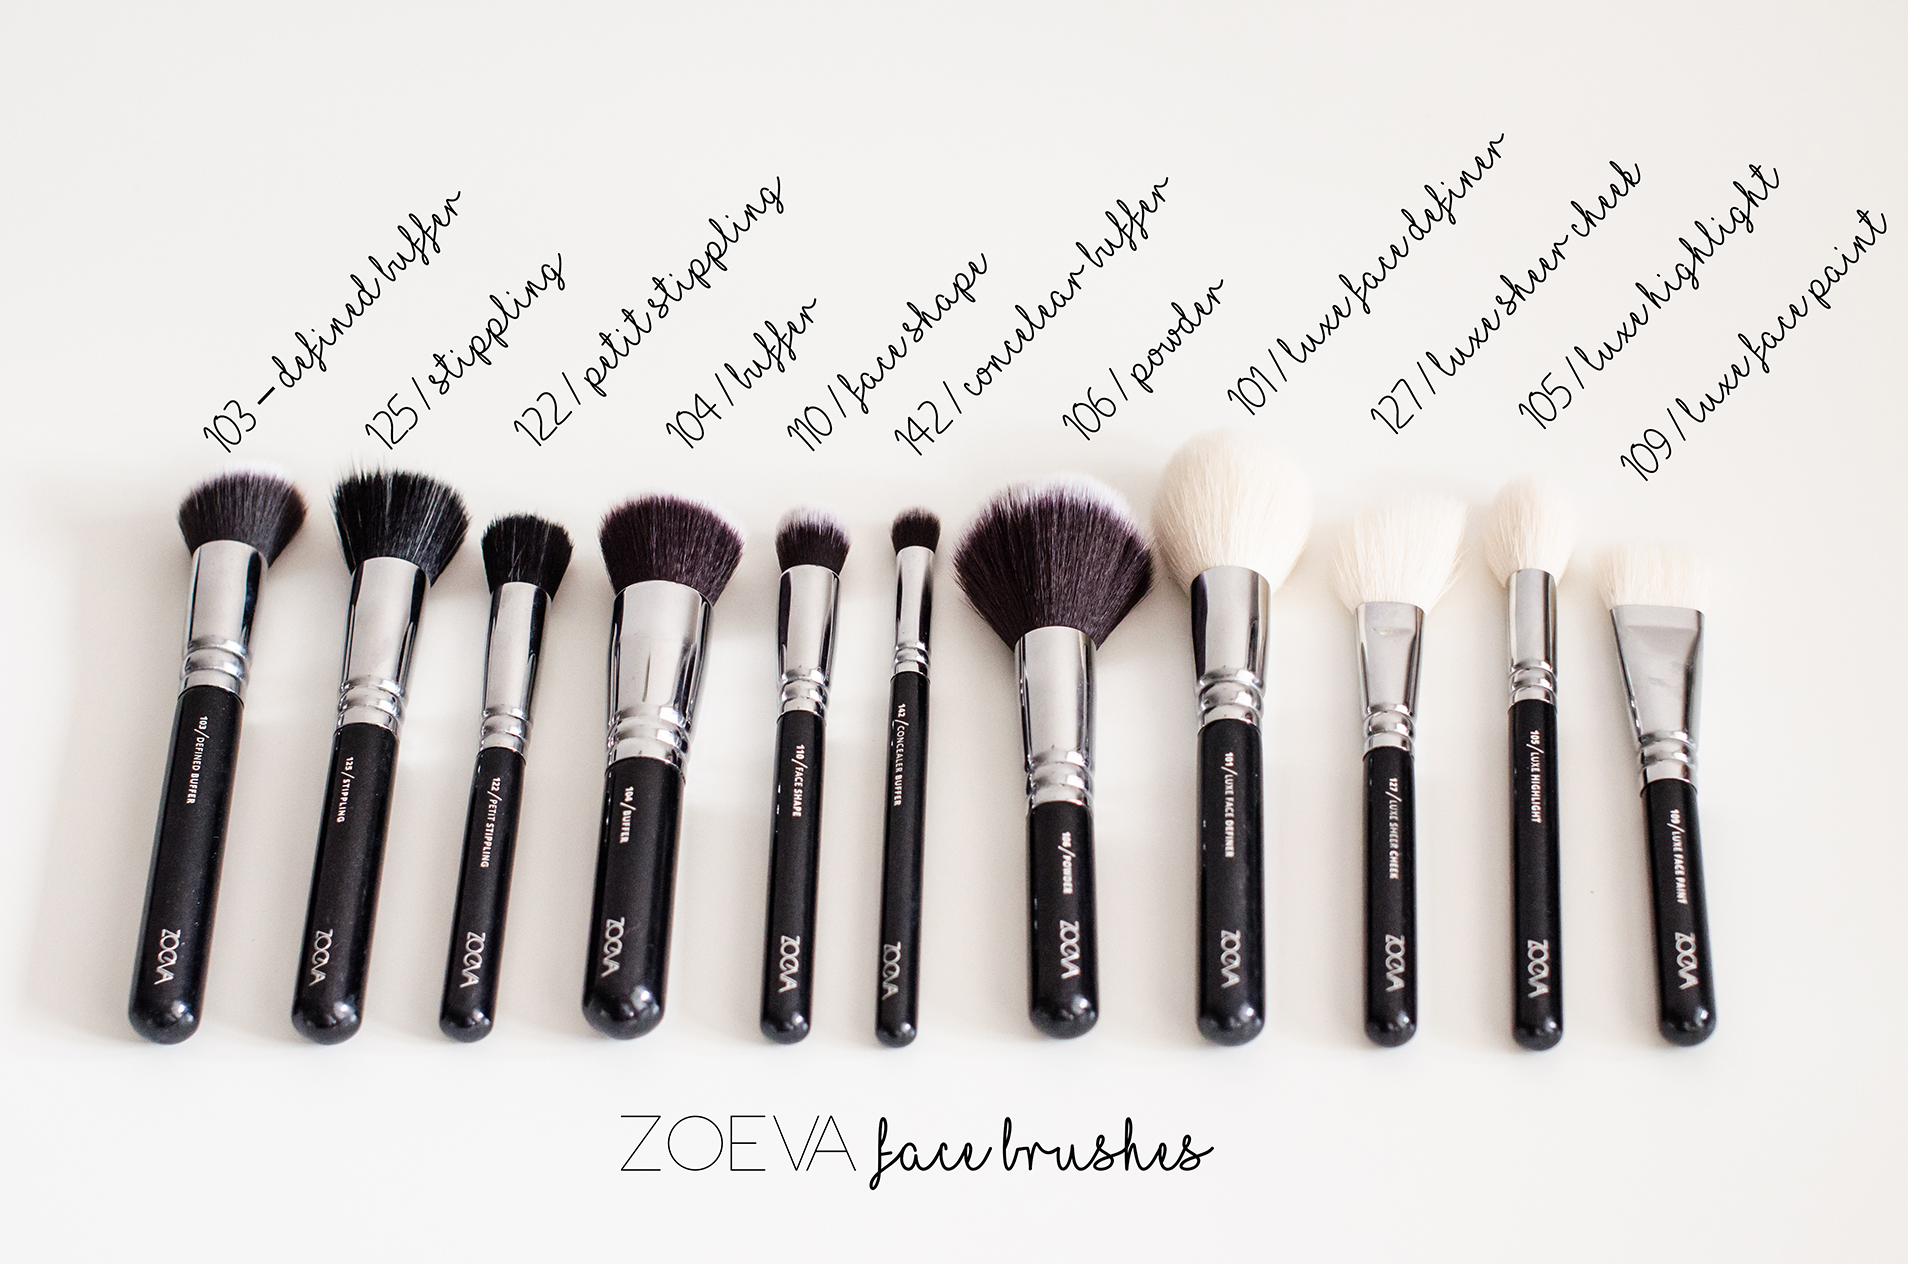 Zoeva_face_brushes_makeup_artist_brush_set_pink_wish_c